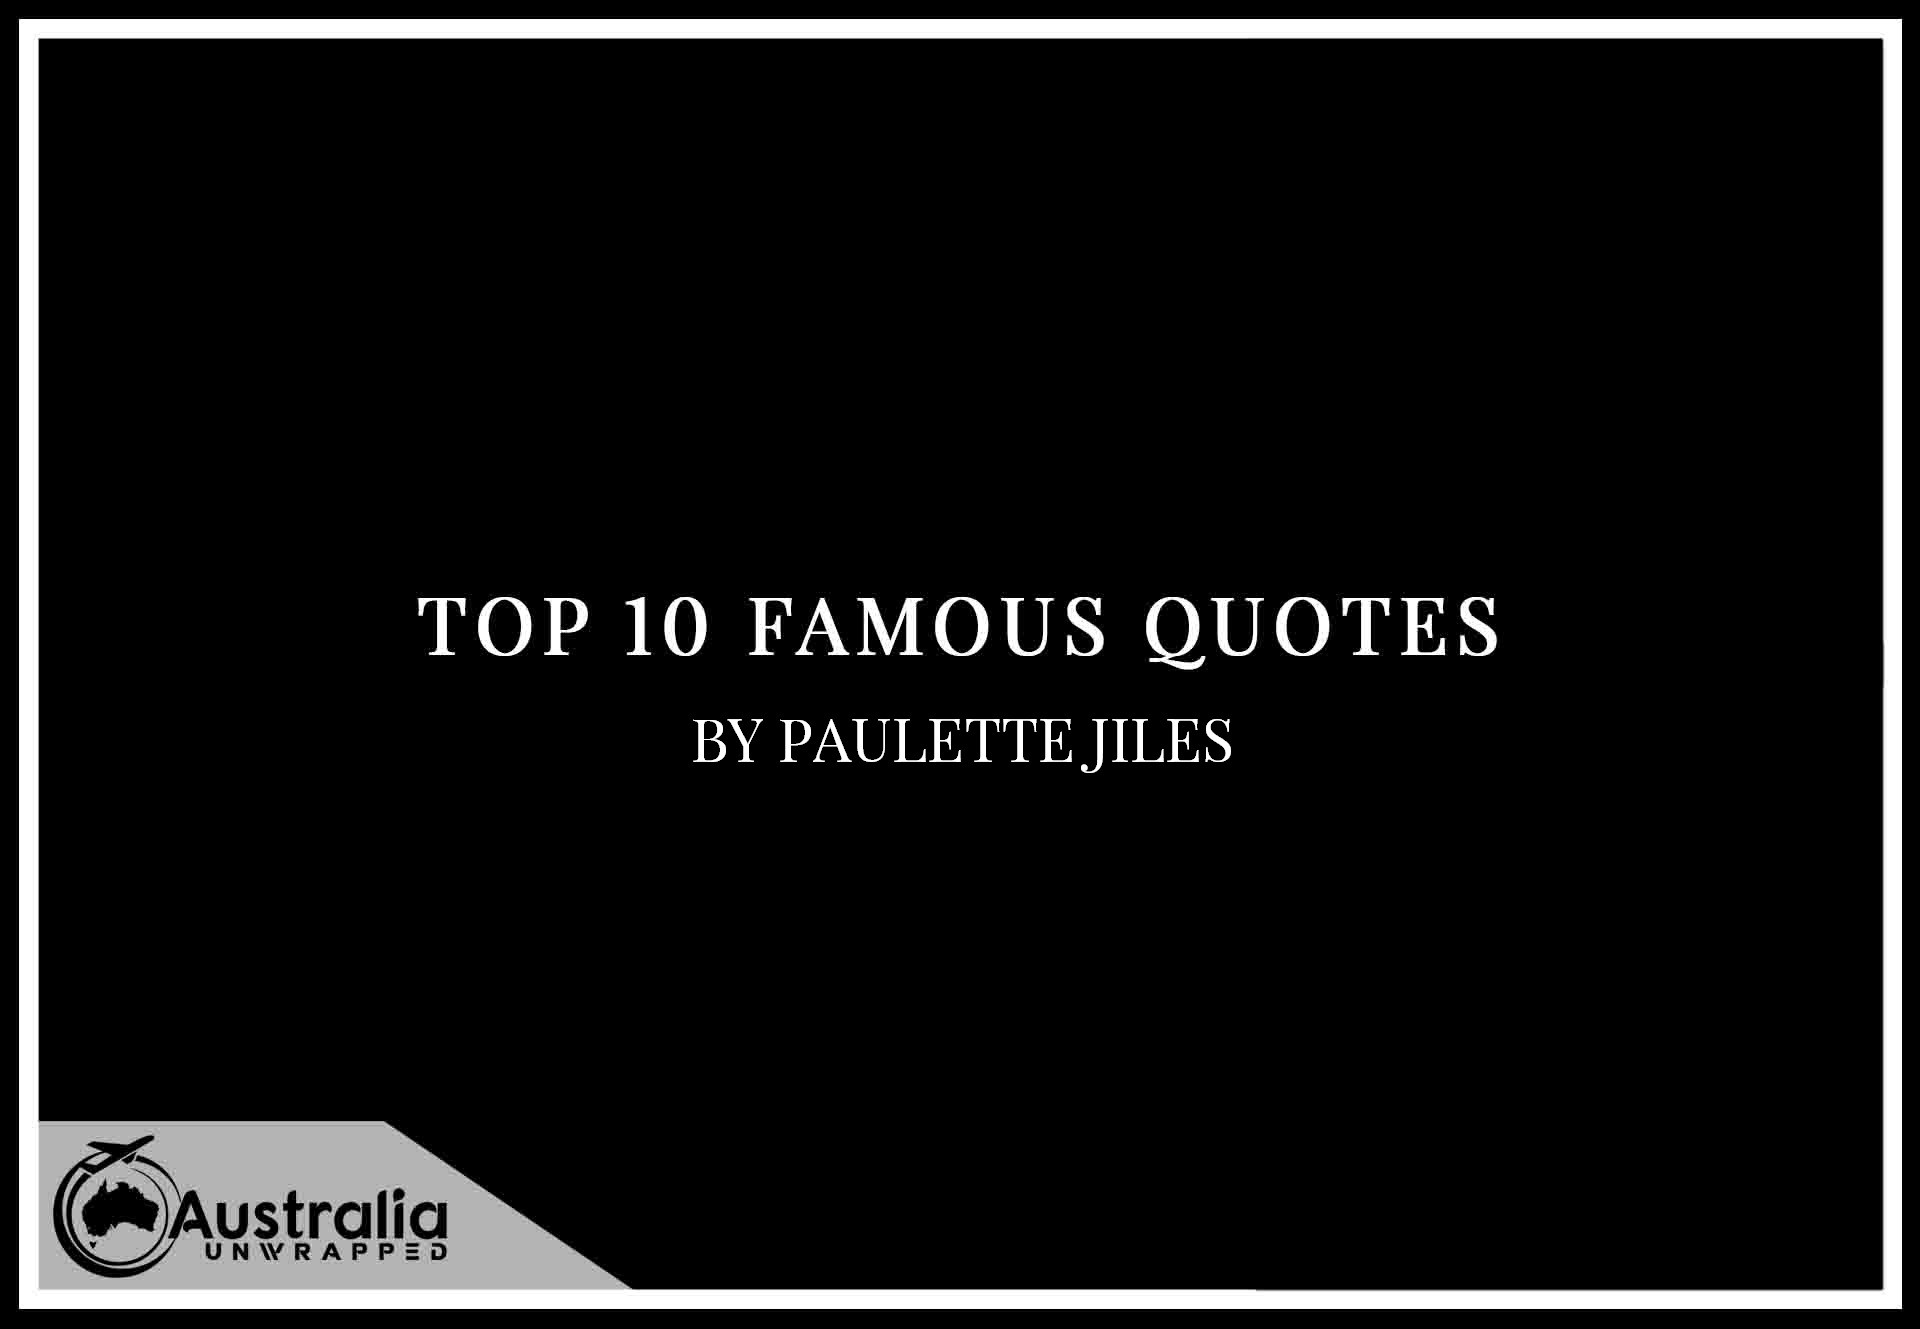 Top 10 Famous Quotes by Author Paulette Jiles